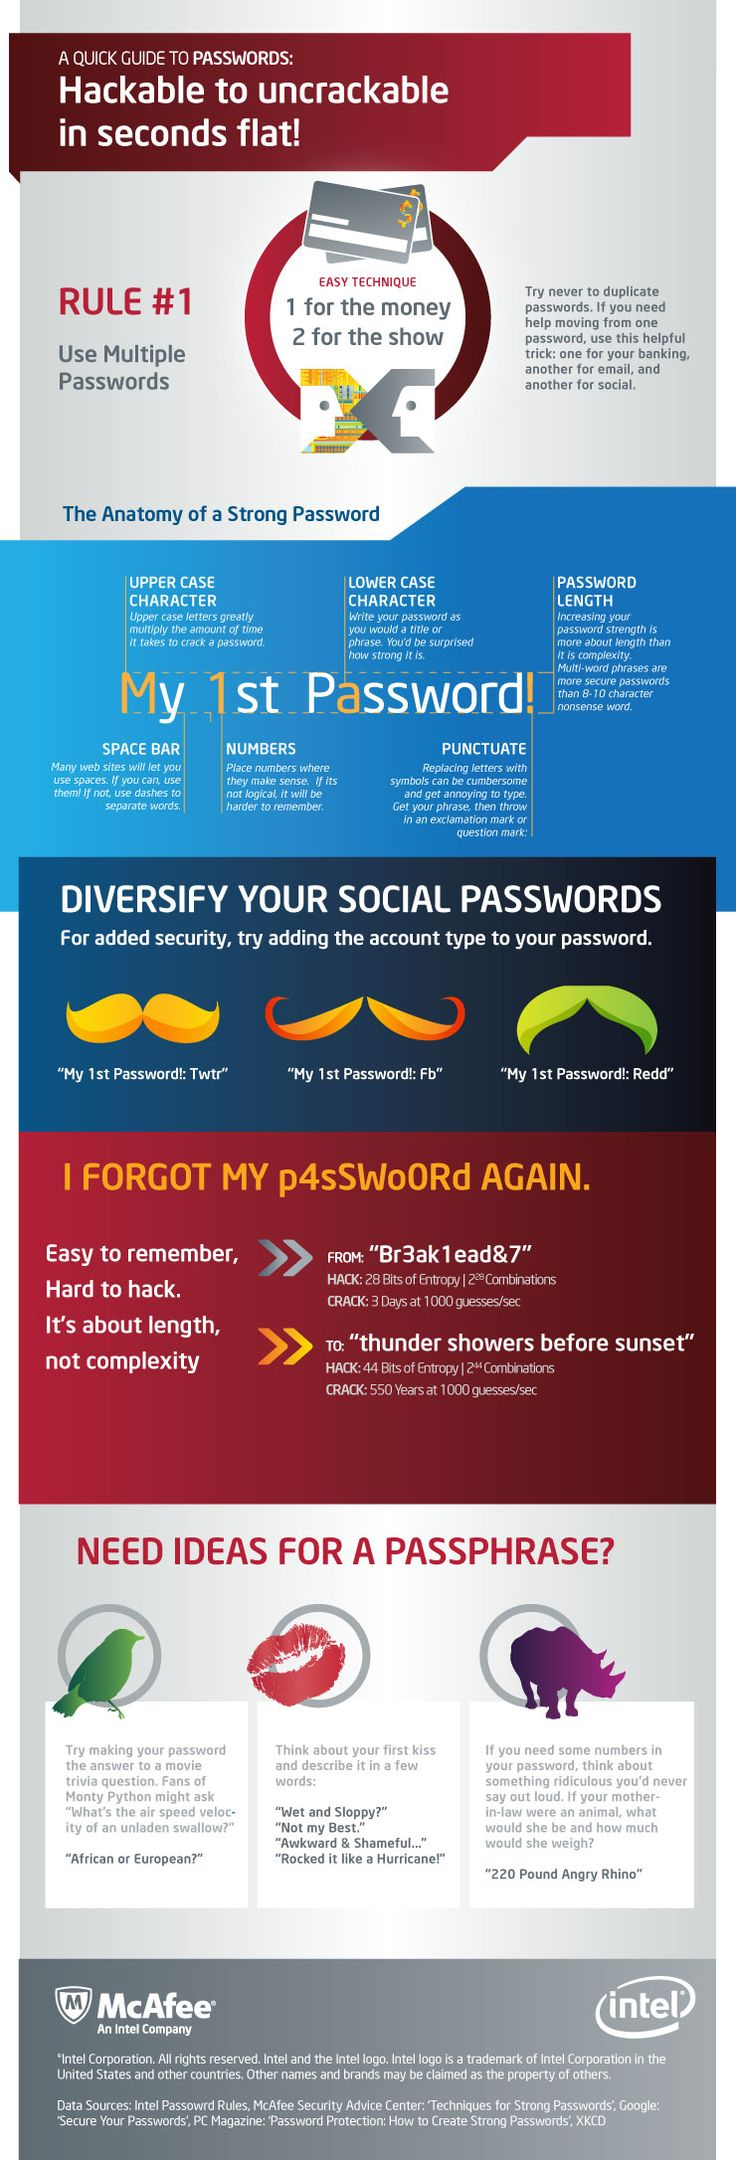 Changed My Password Infographic. Great tips and ideas for those who are not password-savvy! #passwords #security